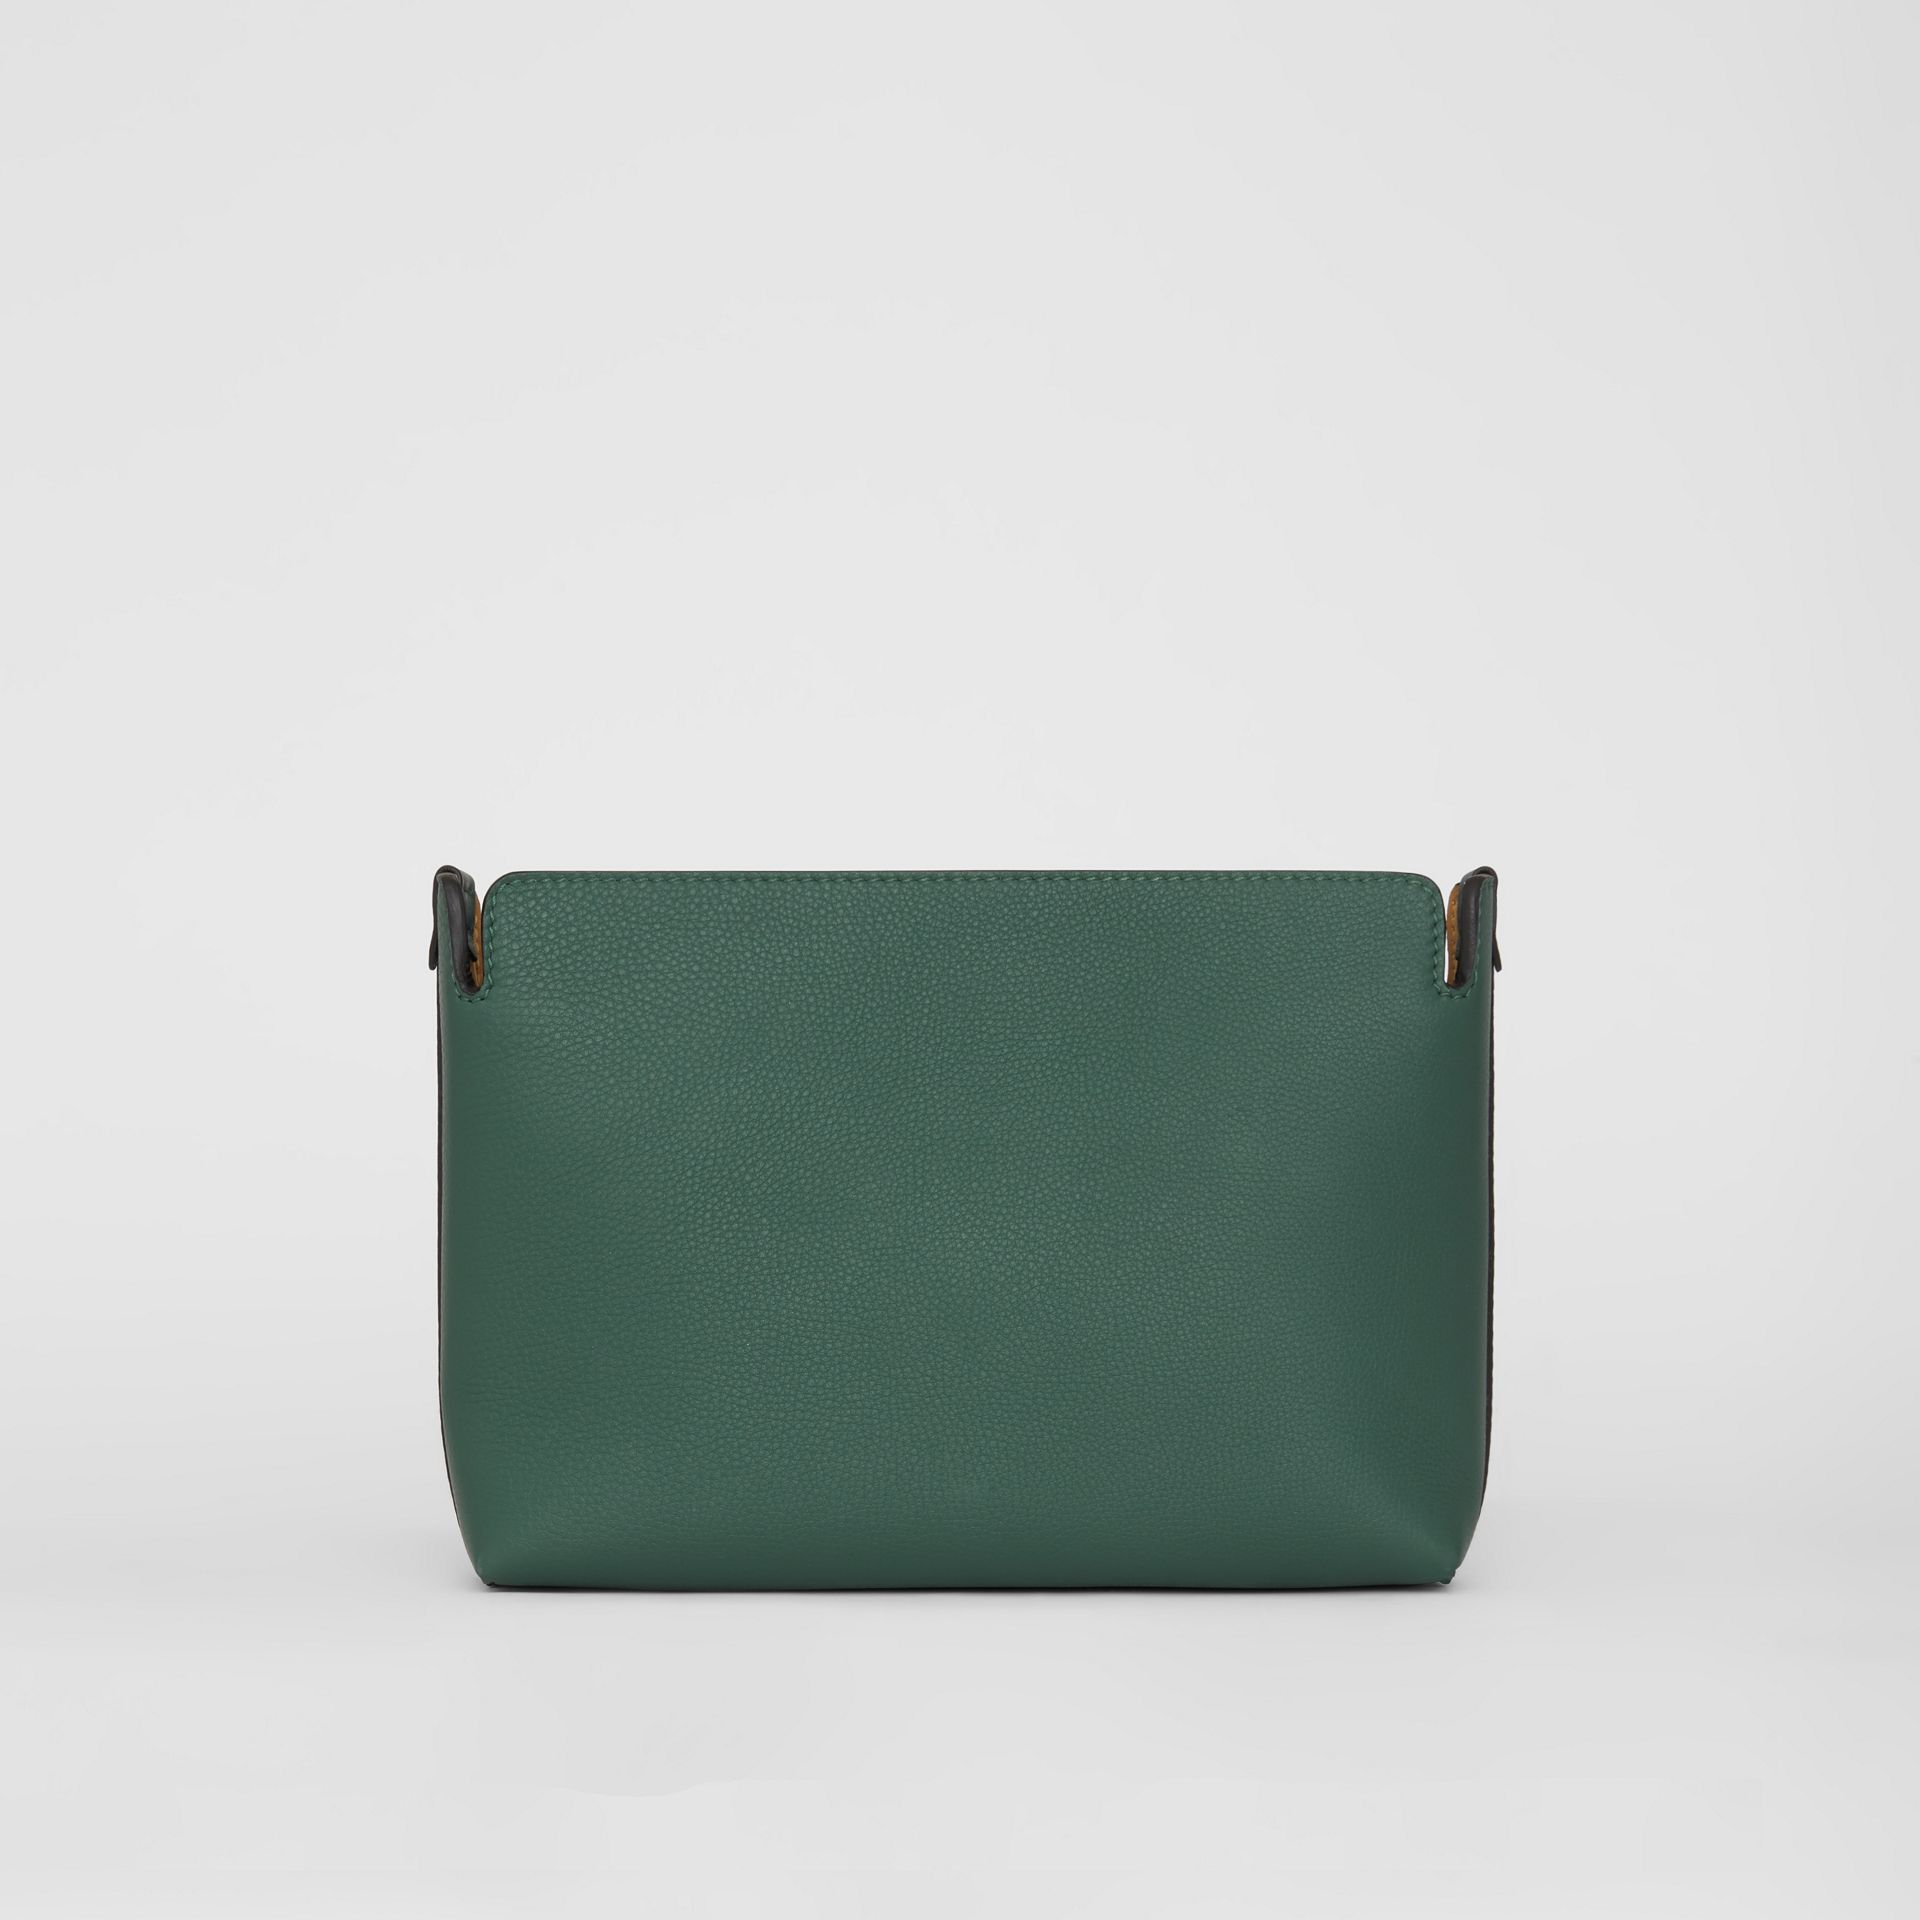 Medium Tri-tone Leather Clutch in Black/sea Green - Women | Burberry - gallery image 7